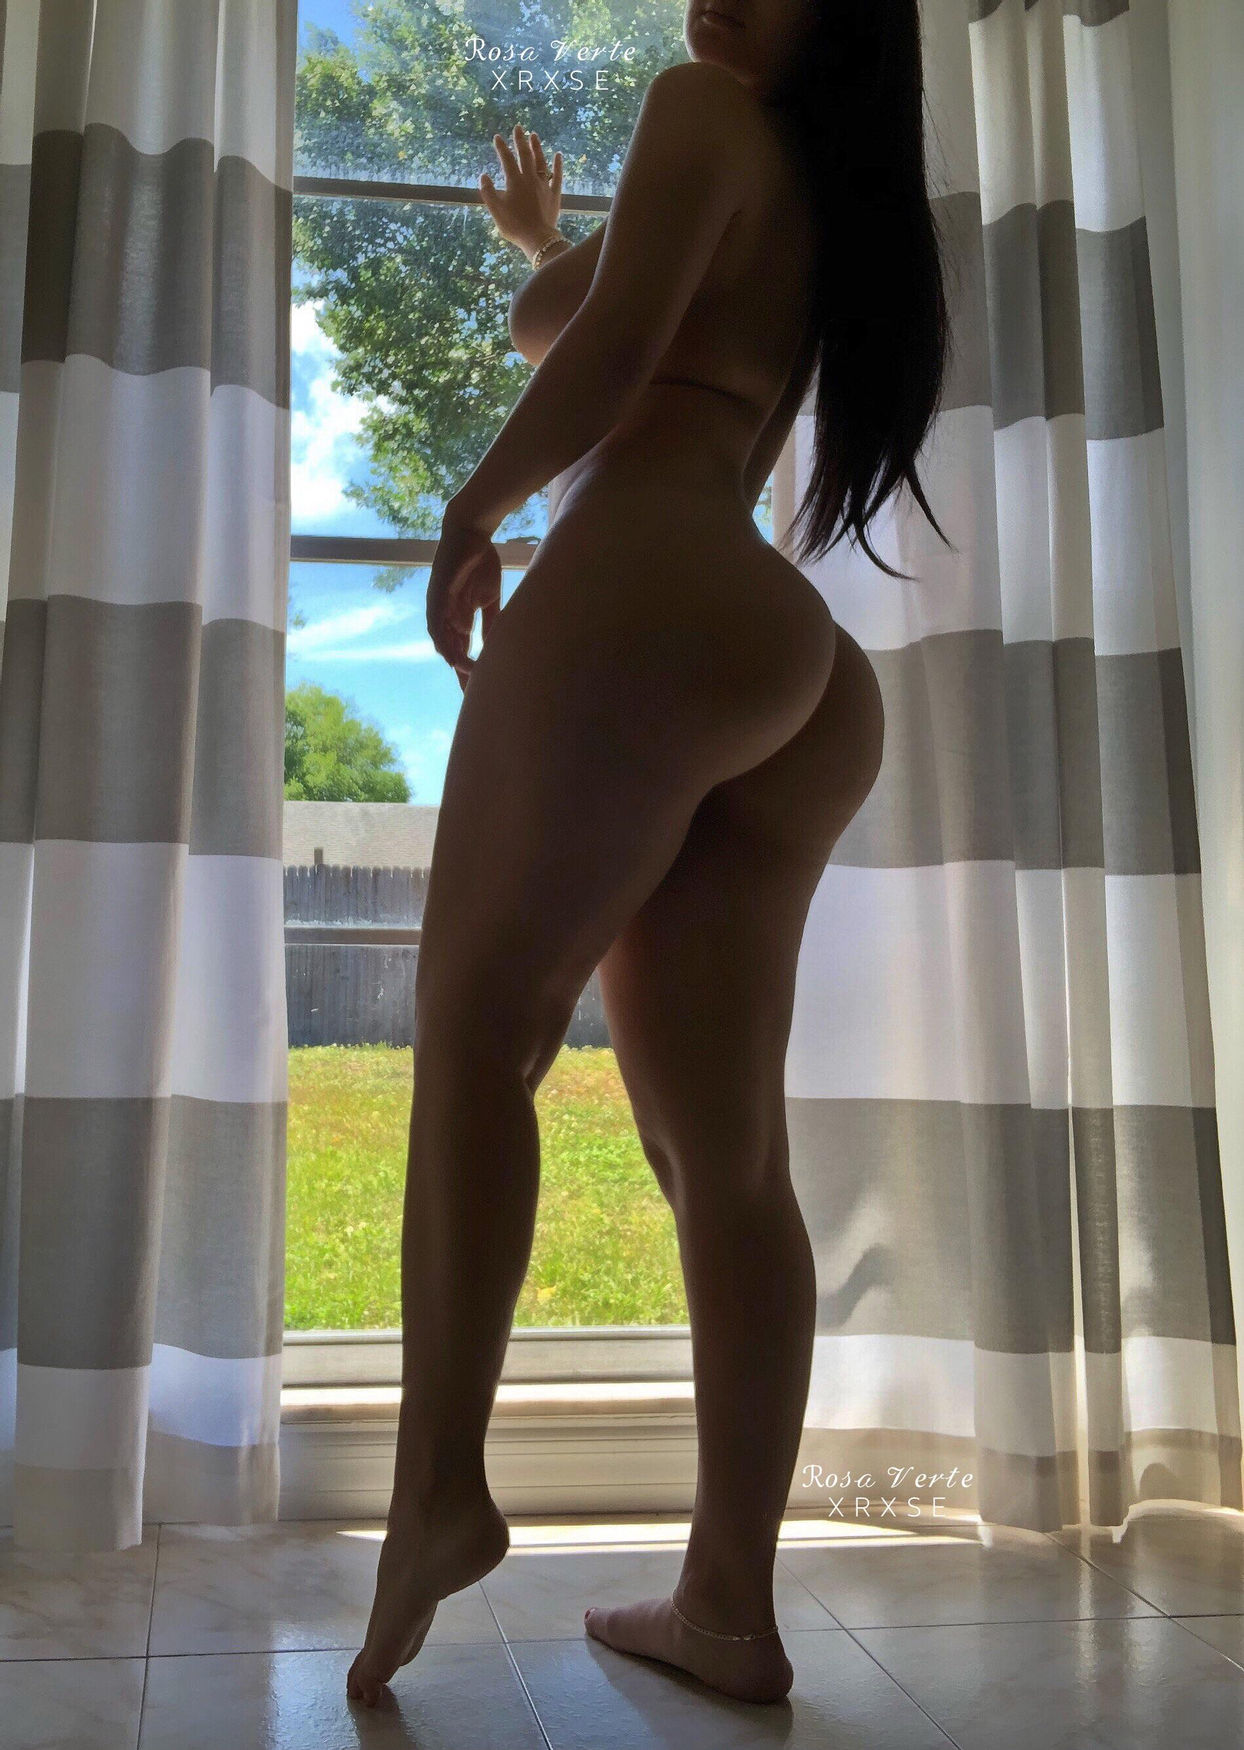 My pawg gf opening the curtains this morning